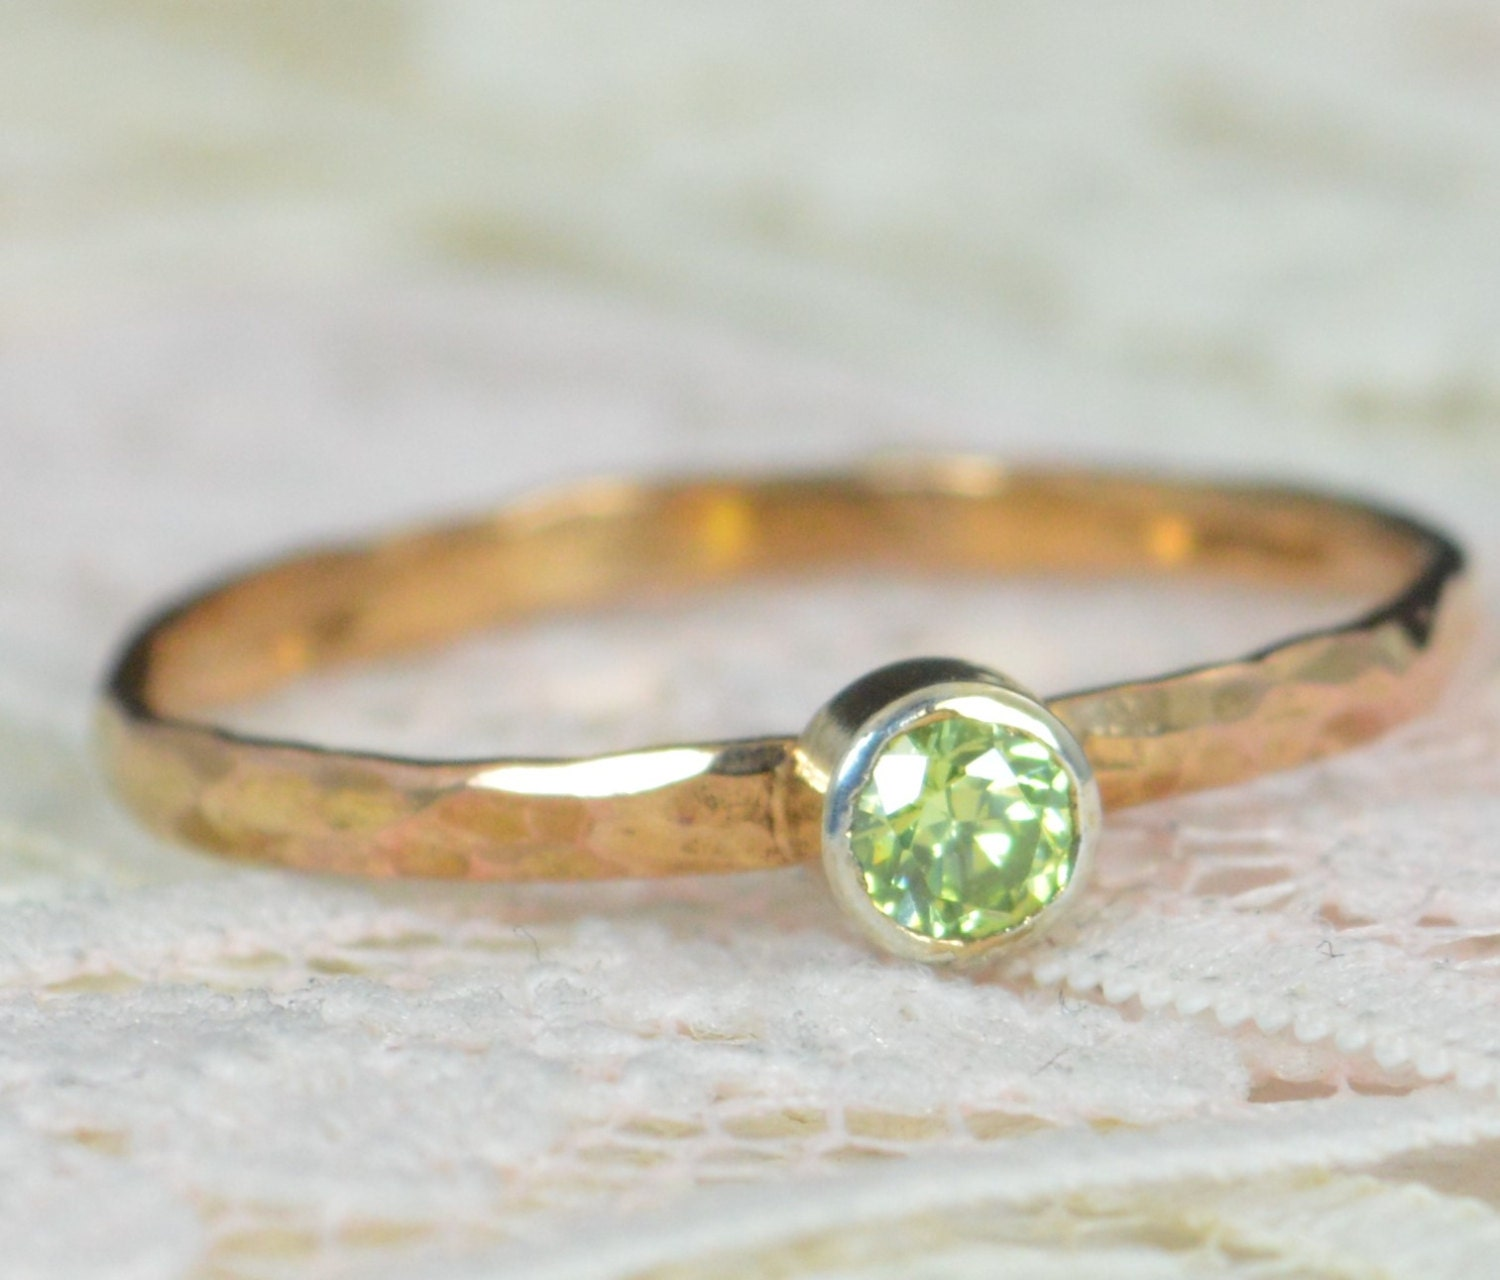 her eternity full rings rose wedding gold ring for band annivery peridot